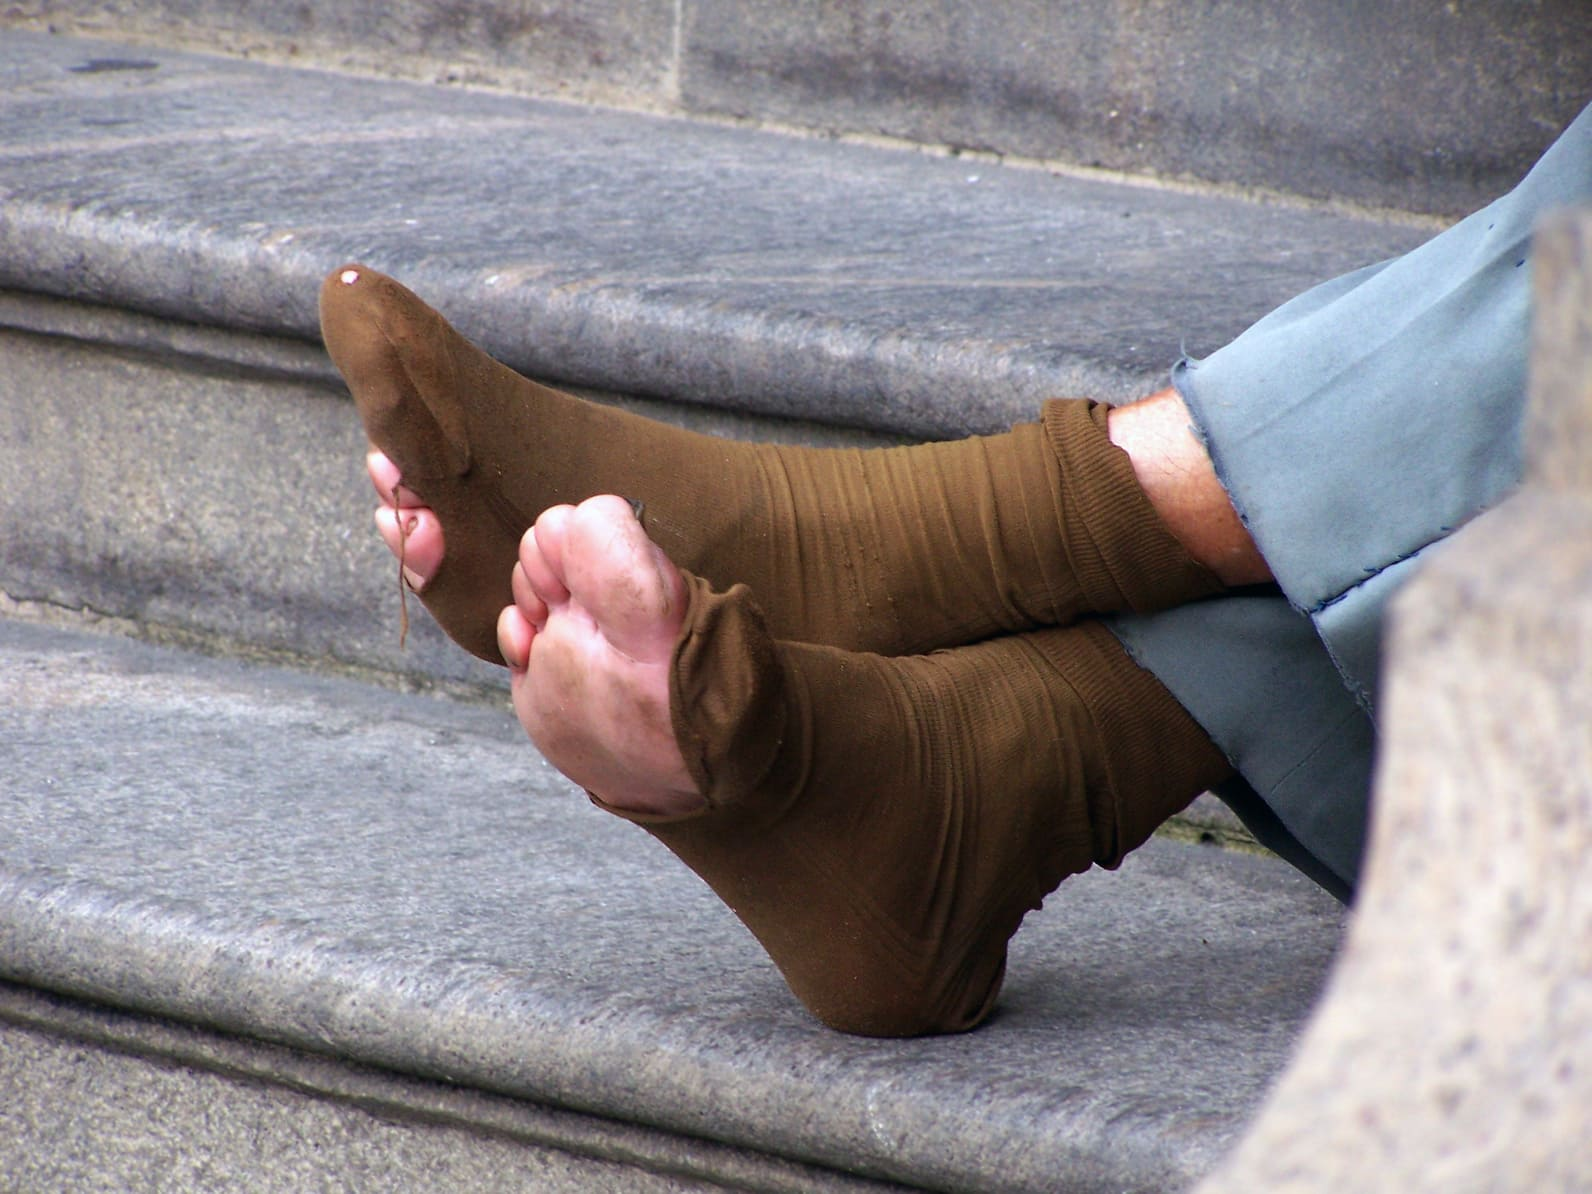 The homeless are in dire need of socks. The Joy of Sox - socks for the homeless.